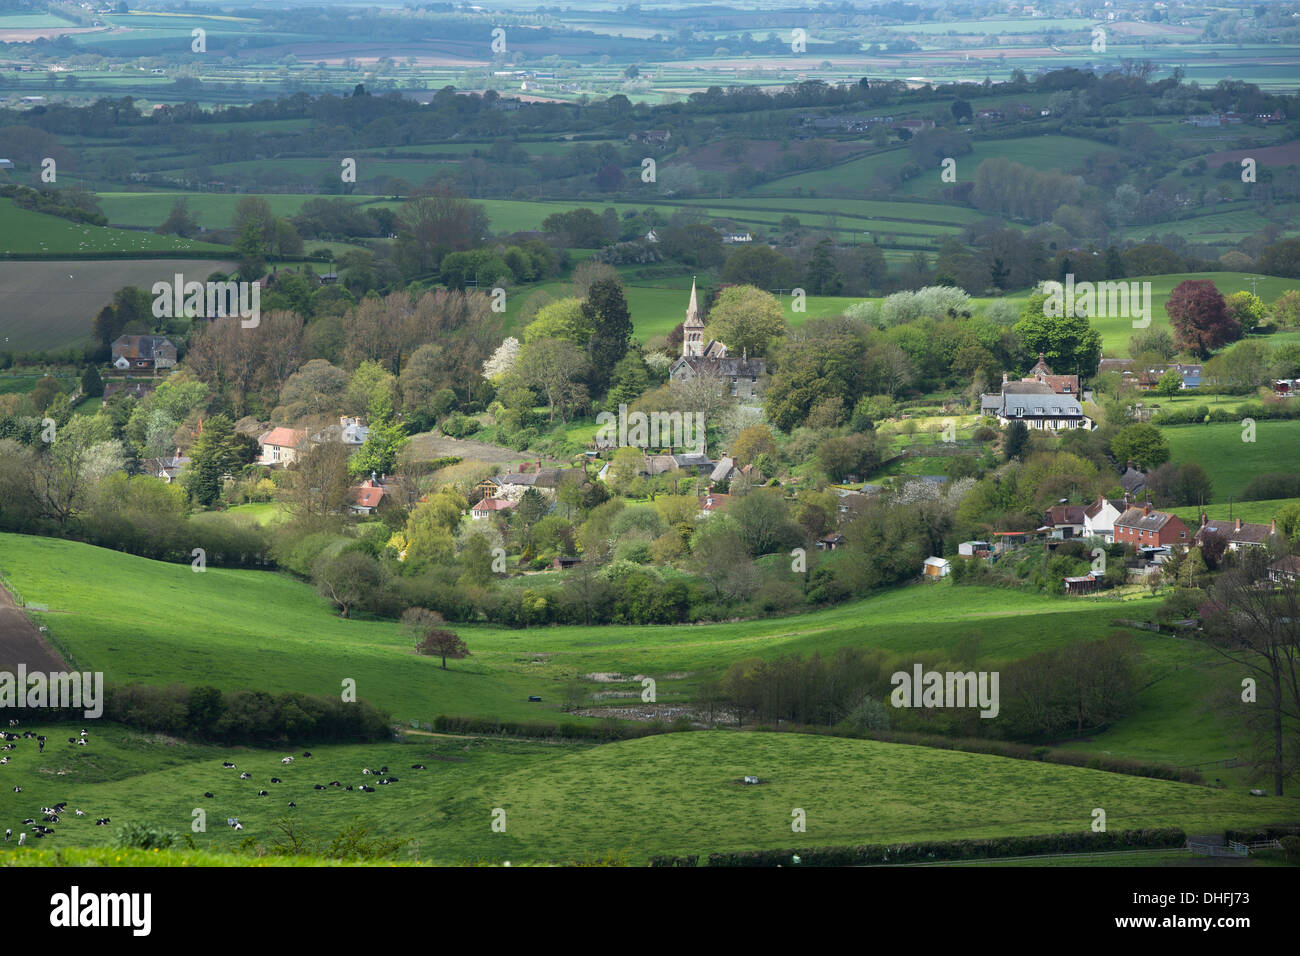 The Dorset Village of Compton Abbas in the Blackmore Vale - Stock Image